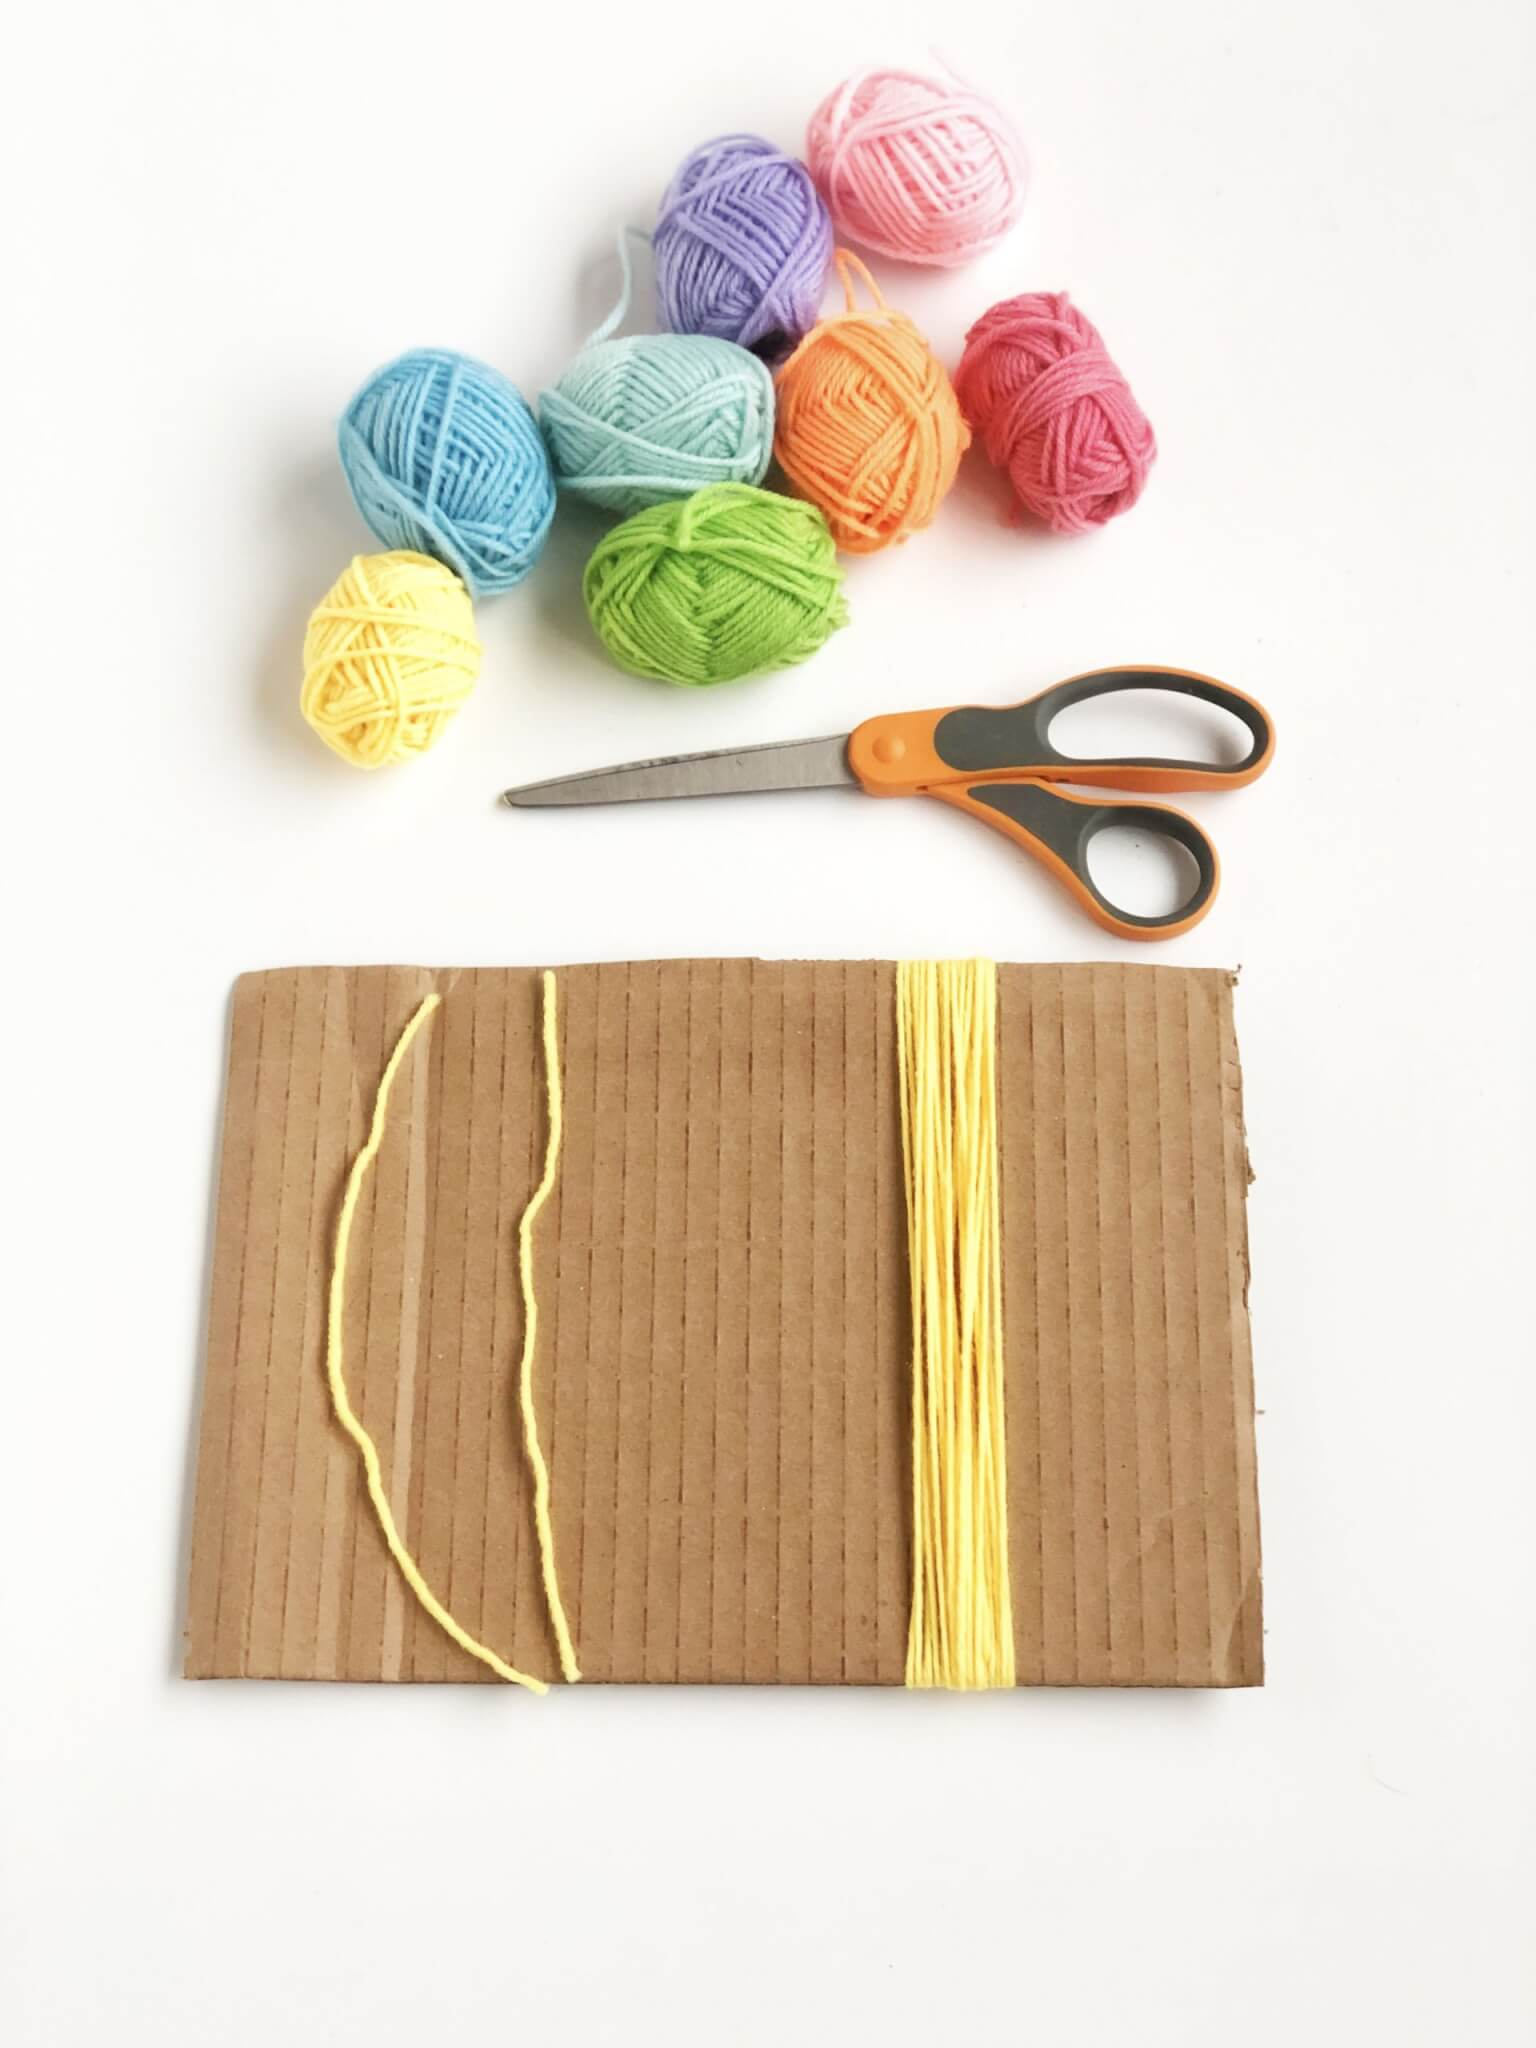 Yarn wrapped to make tassel